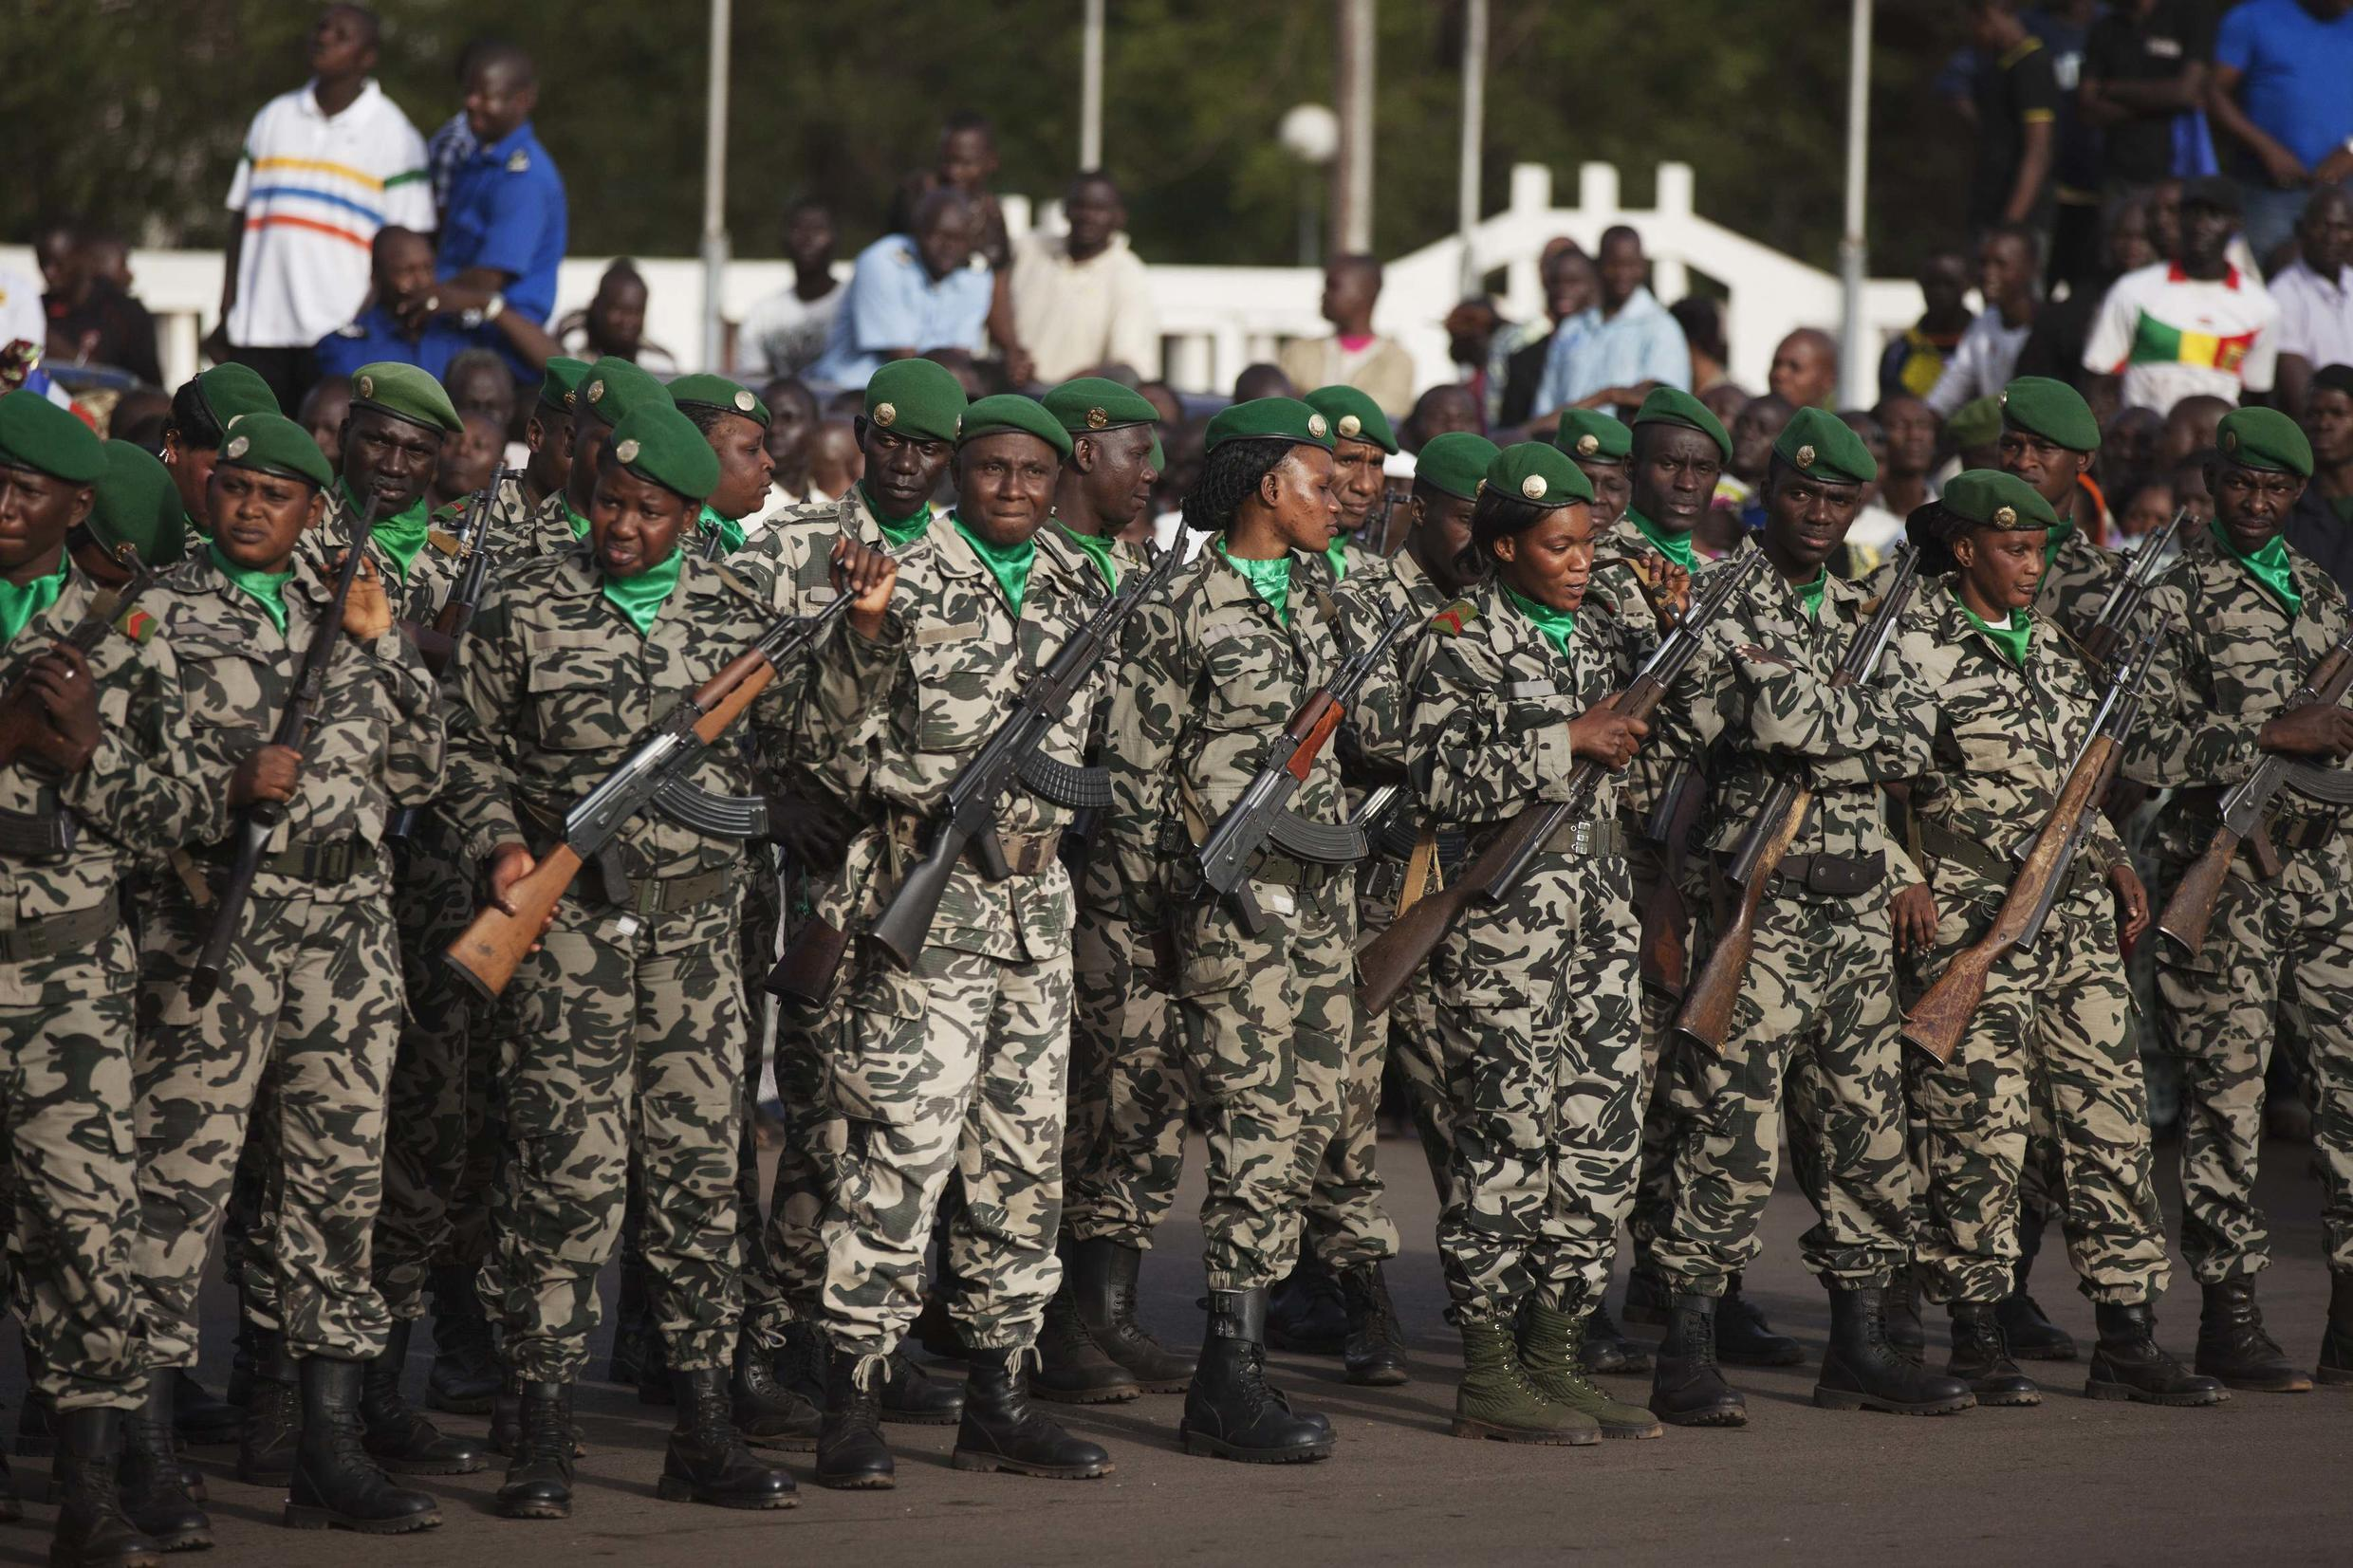 Malian soldiers stand guard before the arrival of France's President Francois Hollande at Independence Plaza in Bamako, Mali February 2, 2013.